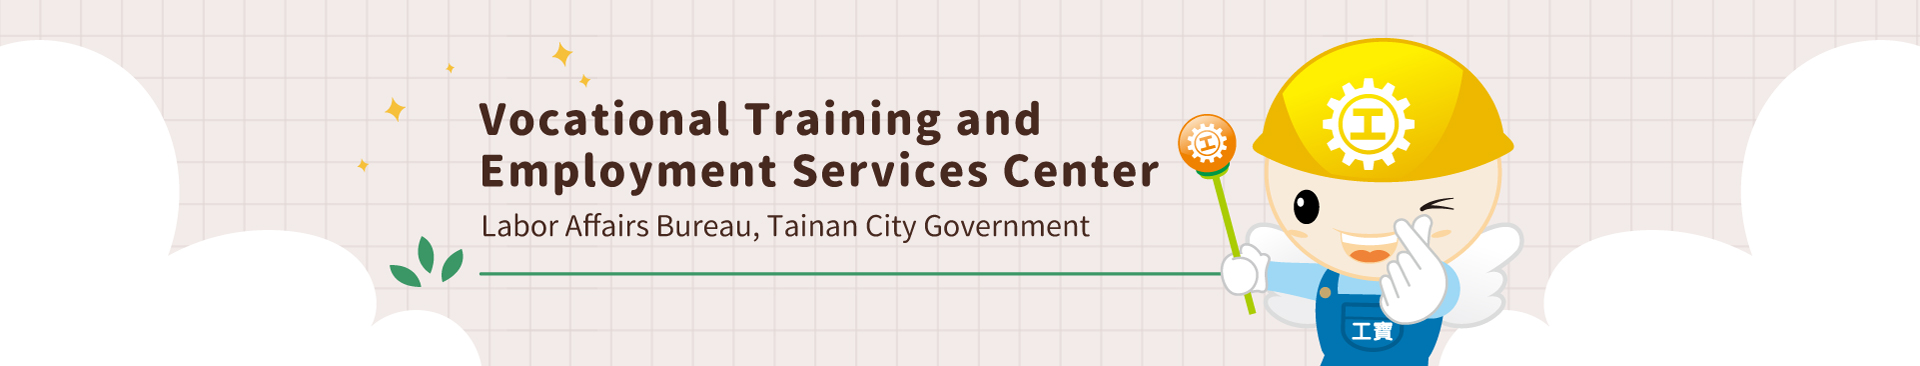 Vocational Training and Employment Services Center - banner